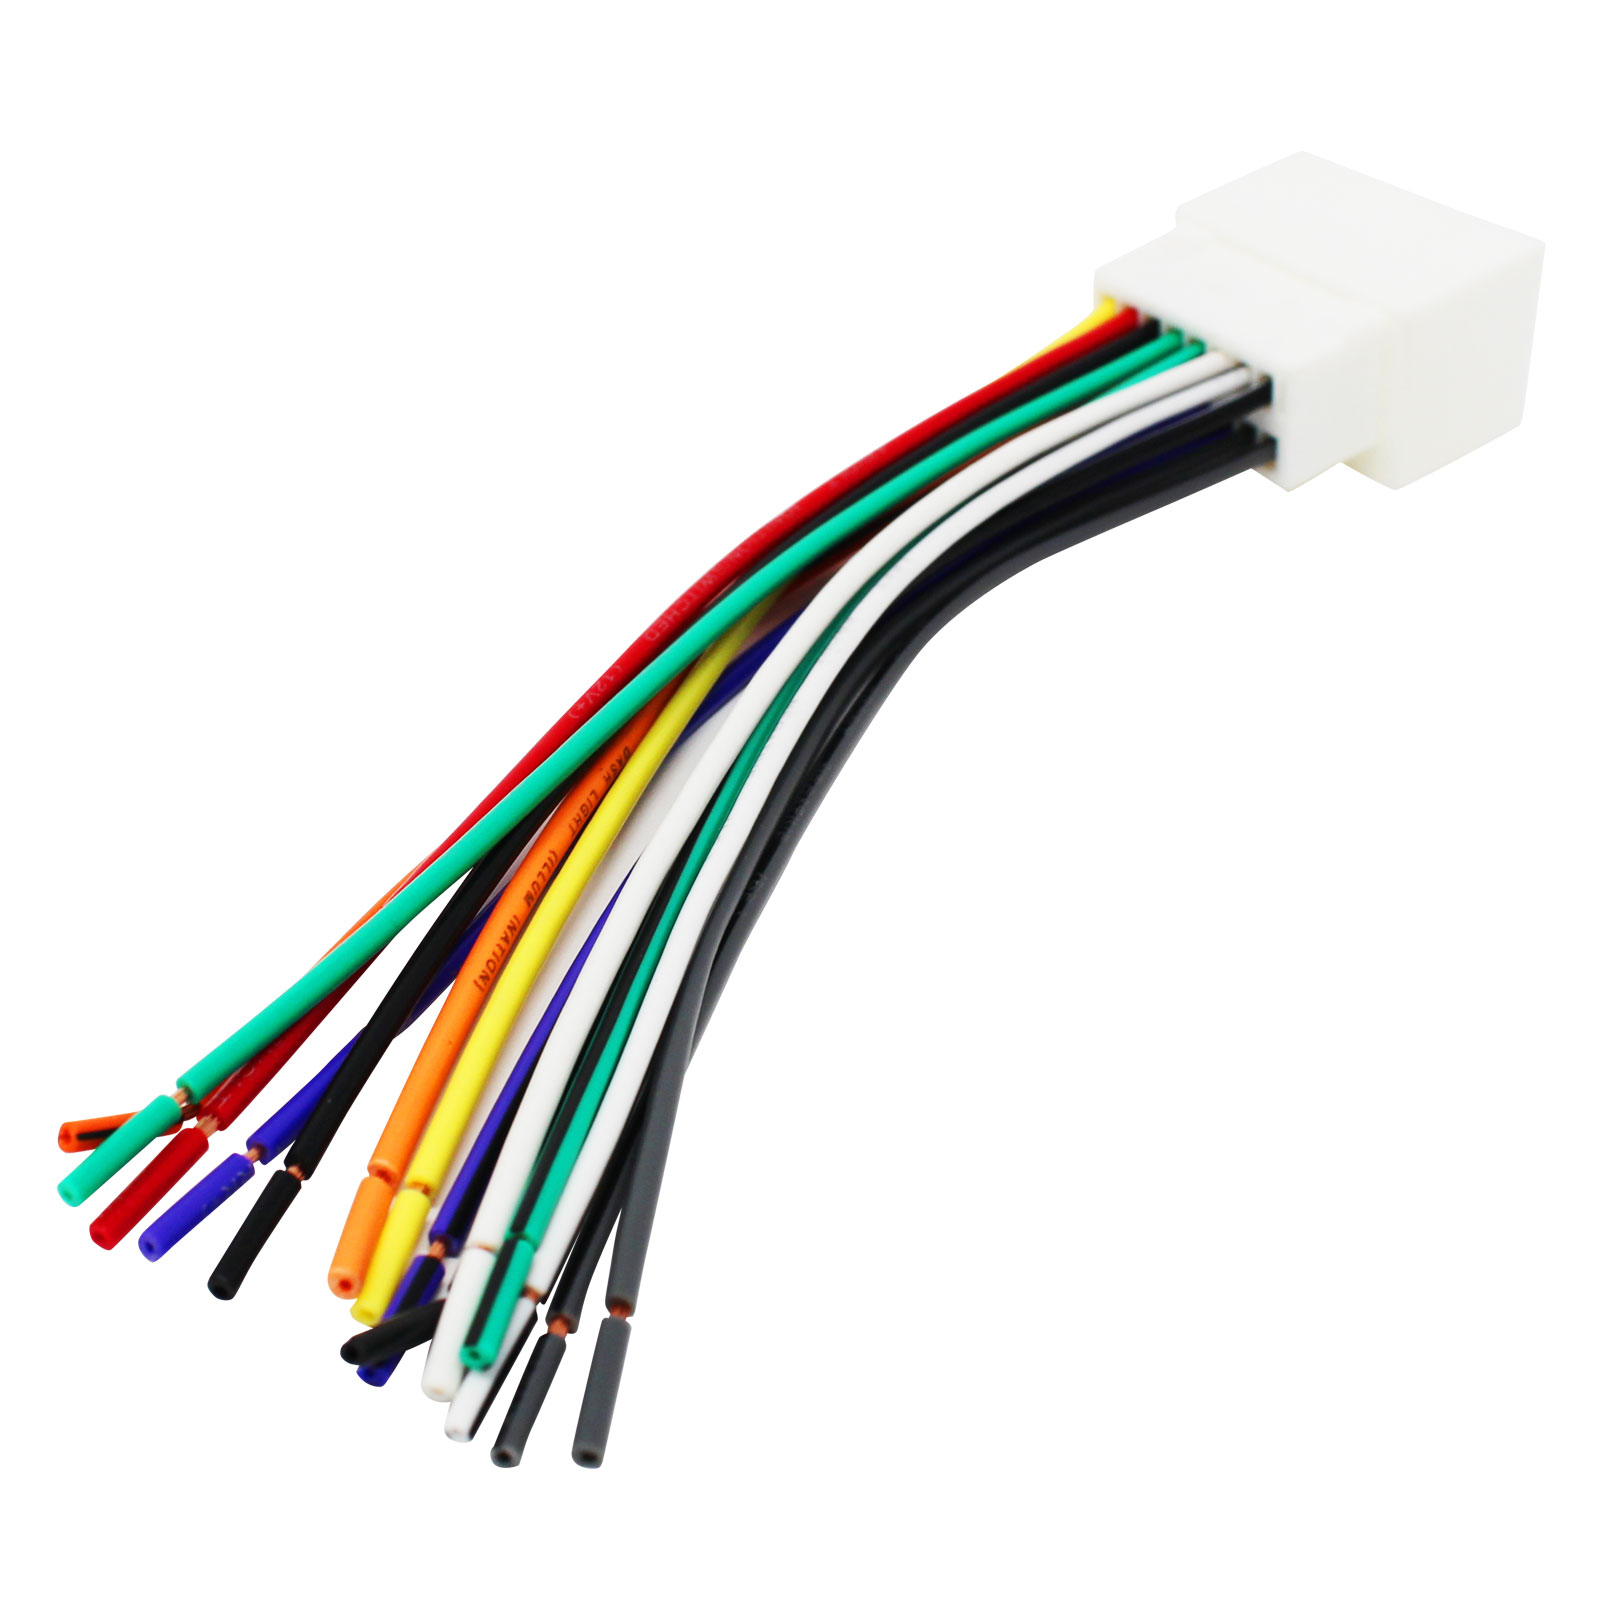 hight resolution of replacement radio wiring harness for 2004 ford f 150 heritage 2004 ford f 250 super duty 2004 ford f 350 super duty 2004 ford f 450 super duty